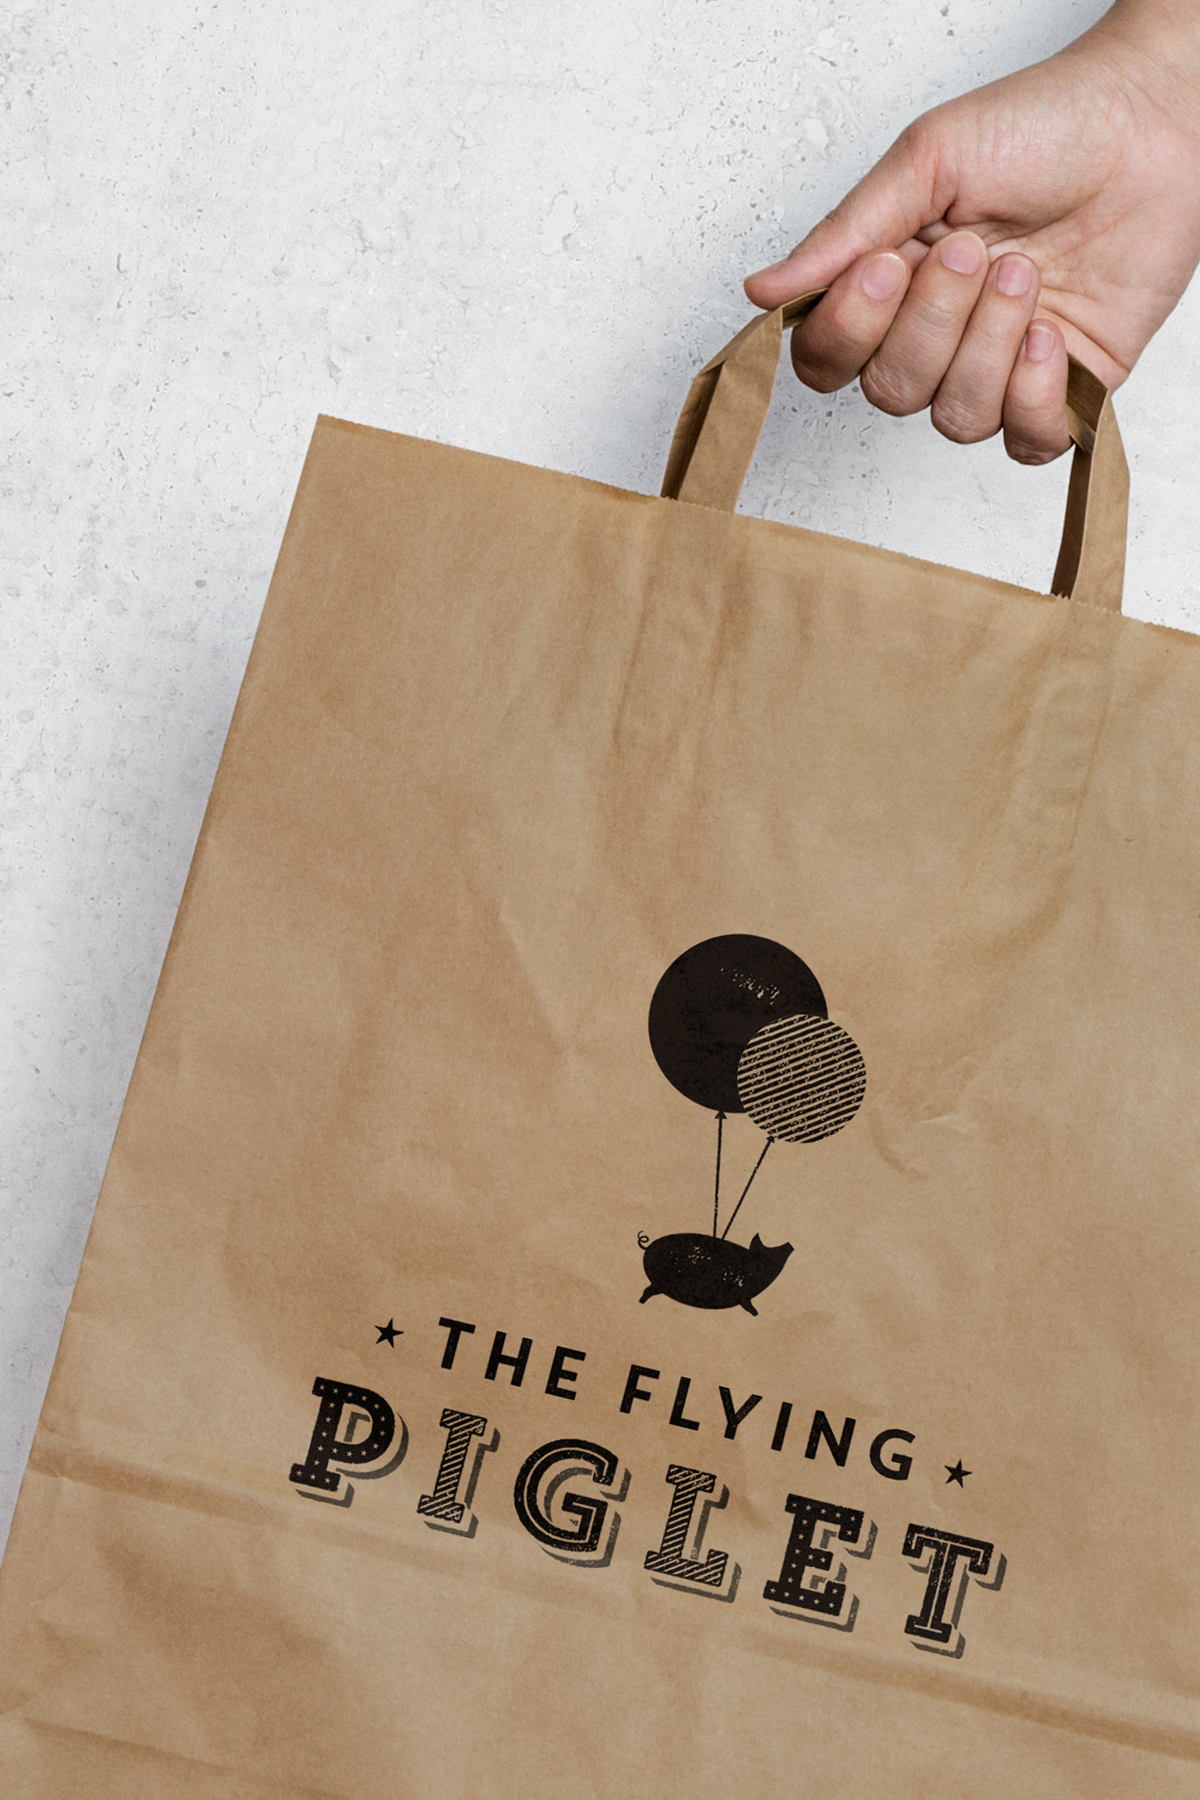 Salt Design - The Flying Piglet gourmet street food brand identity